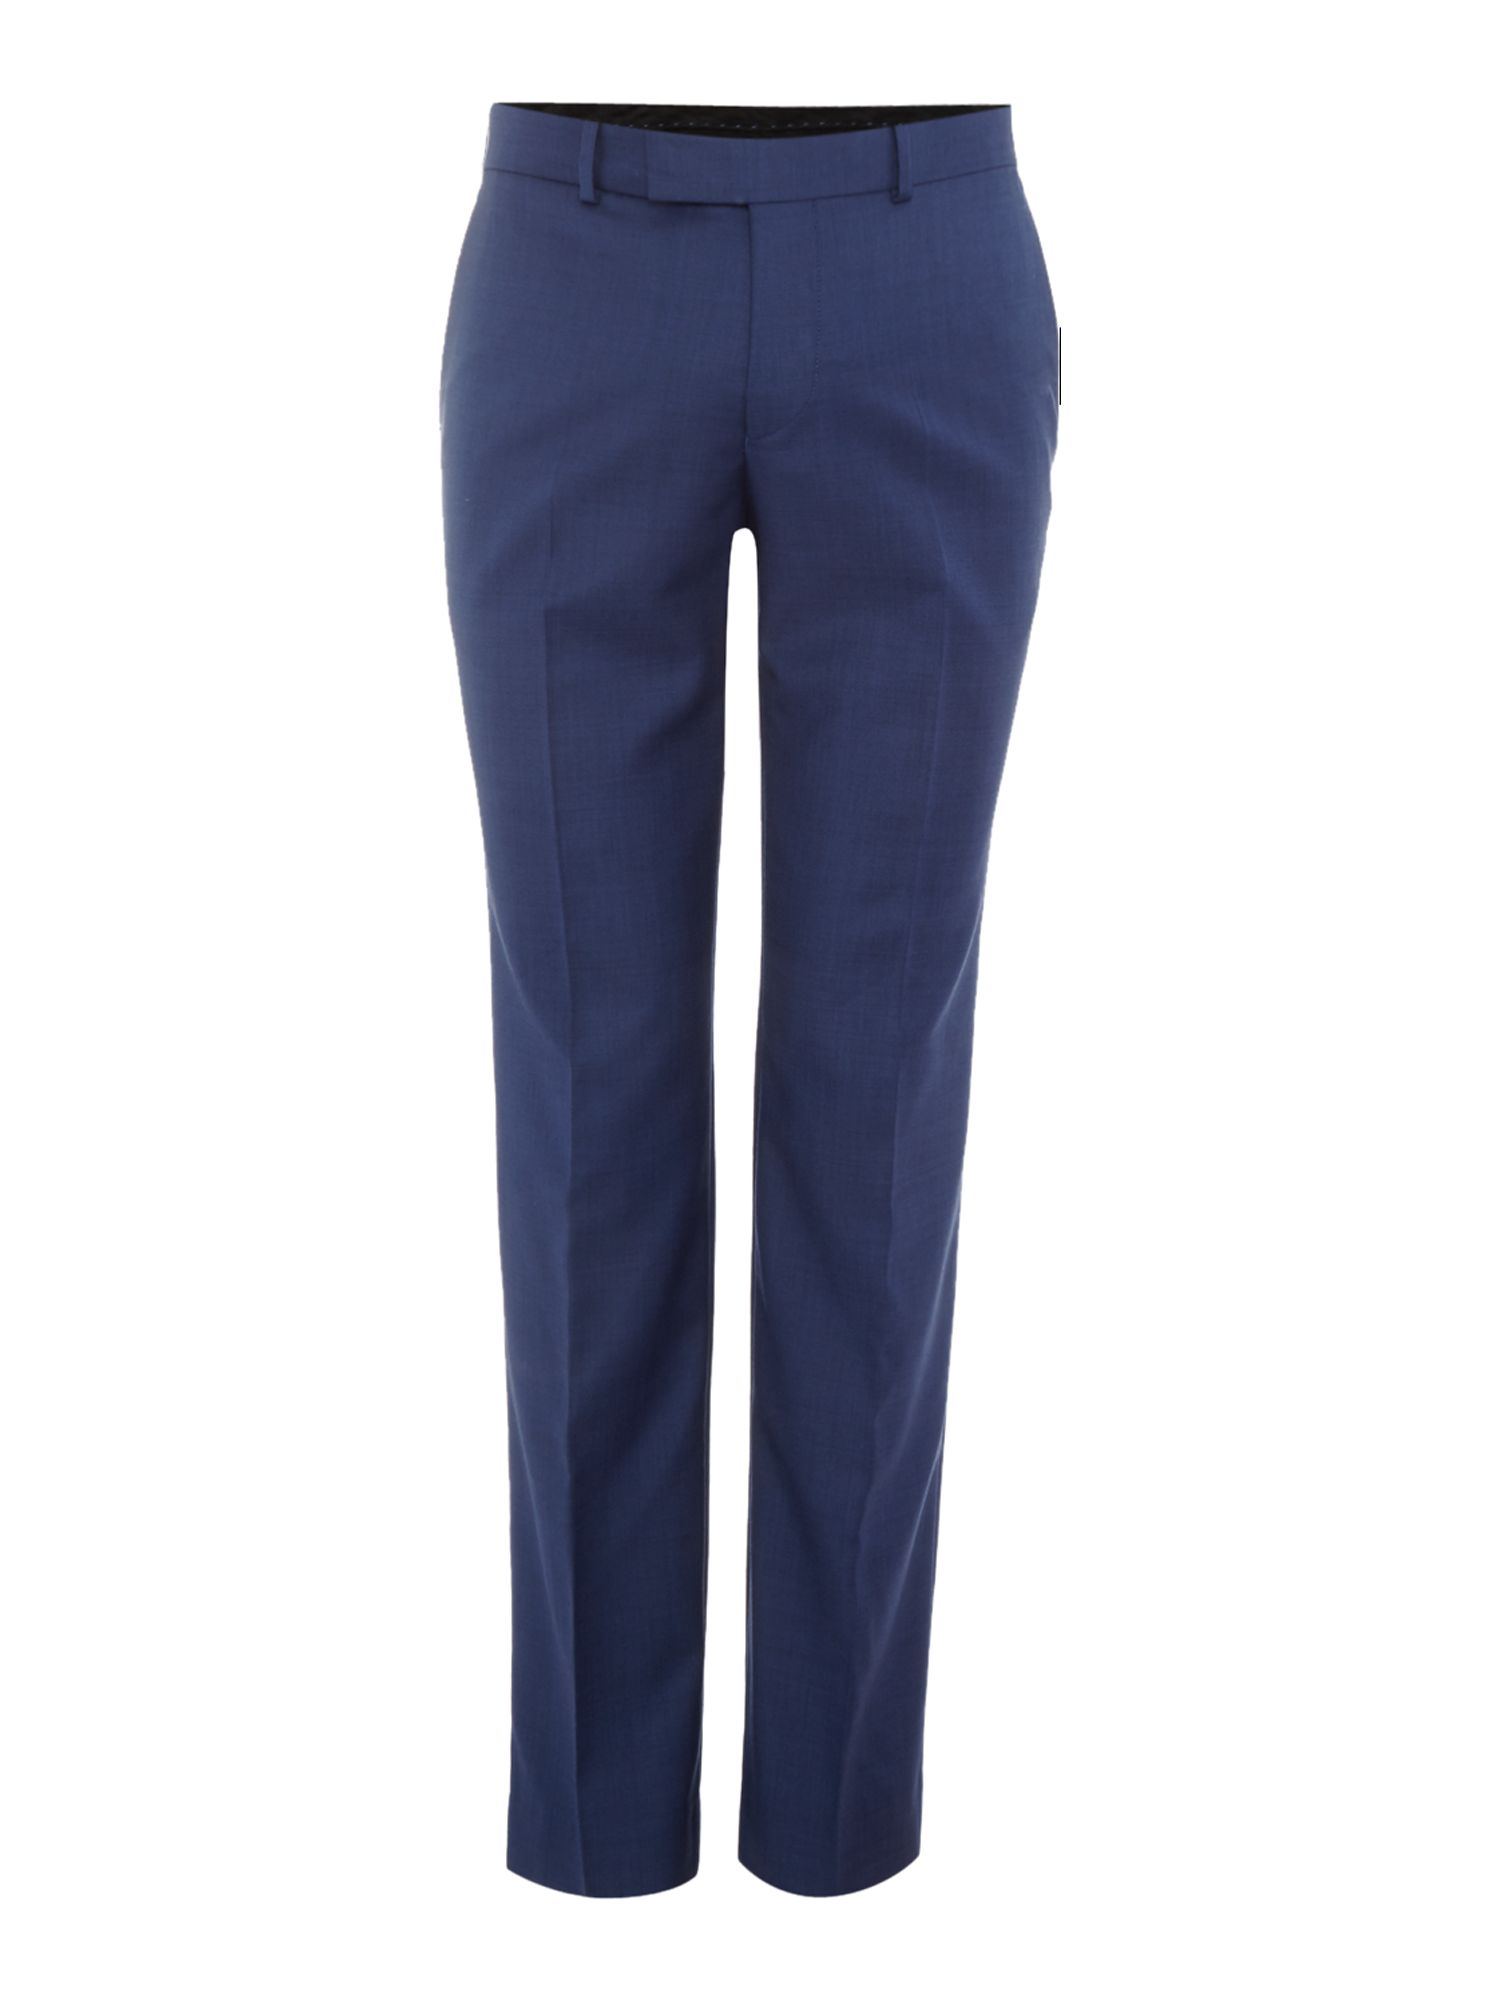 Men's Simon Carter Slim Sharkskin Peak Trousers, Navy